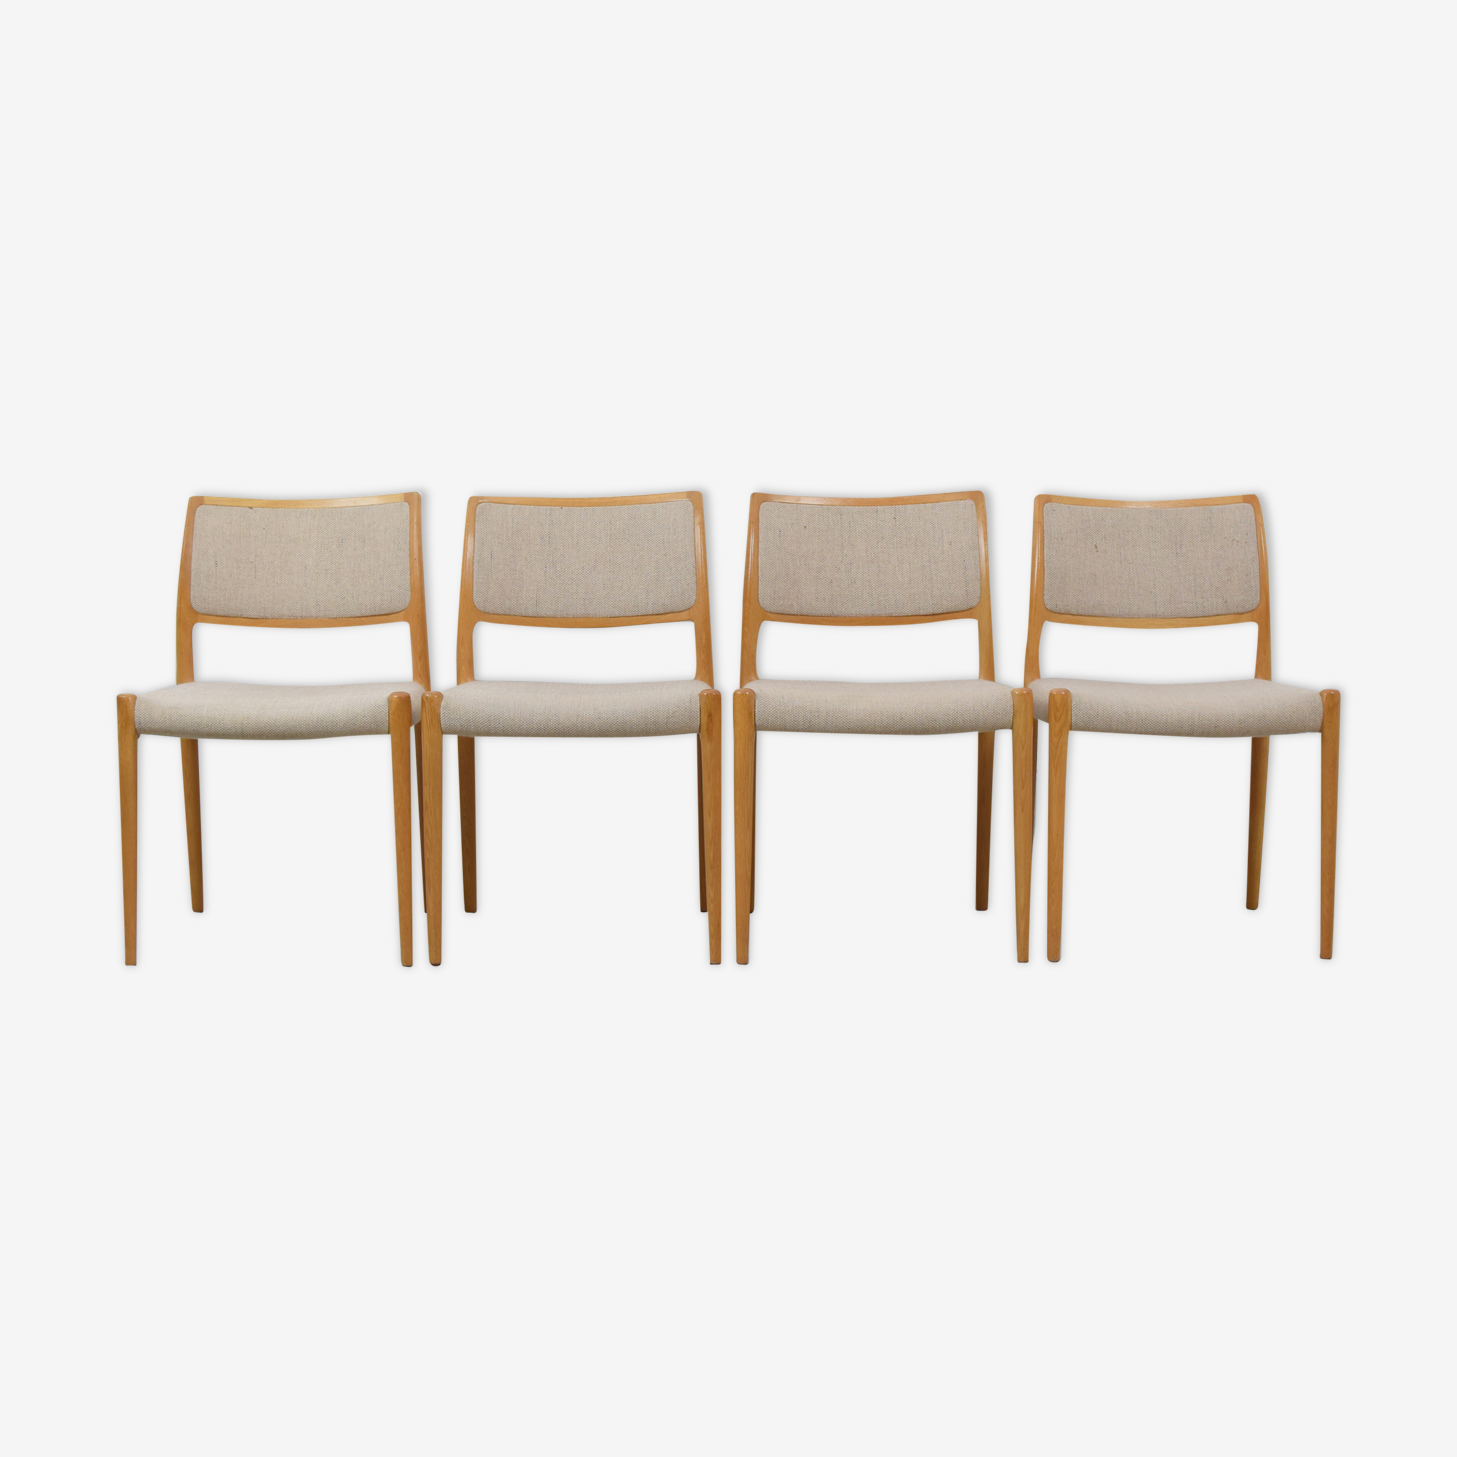 Set of four 'Model 80' chairs by Niels Otto Møller, Denmark 1950's.